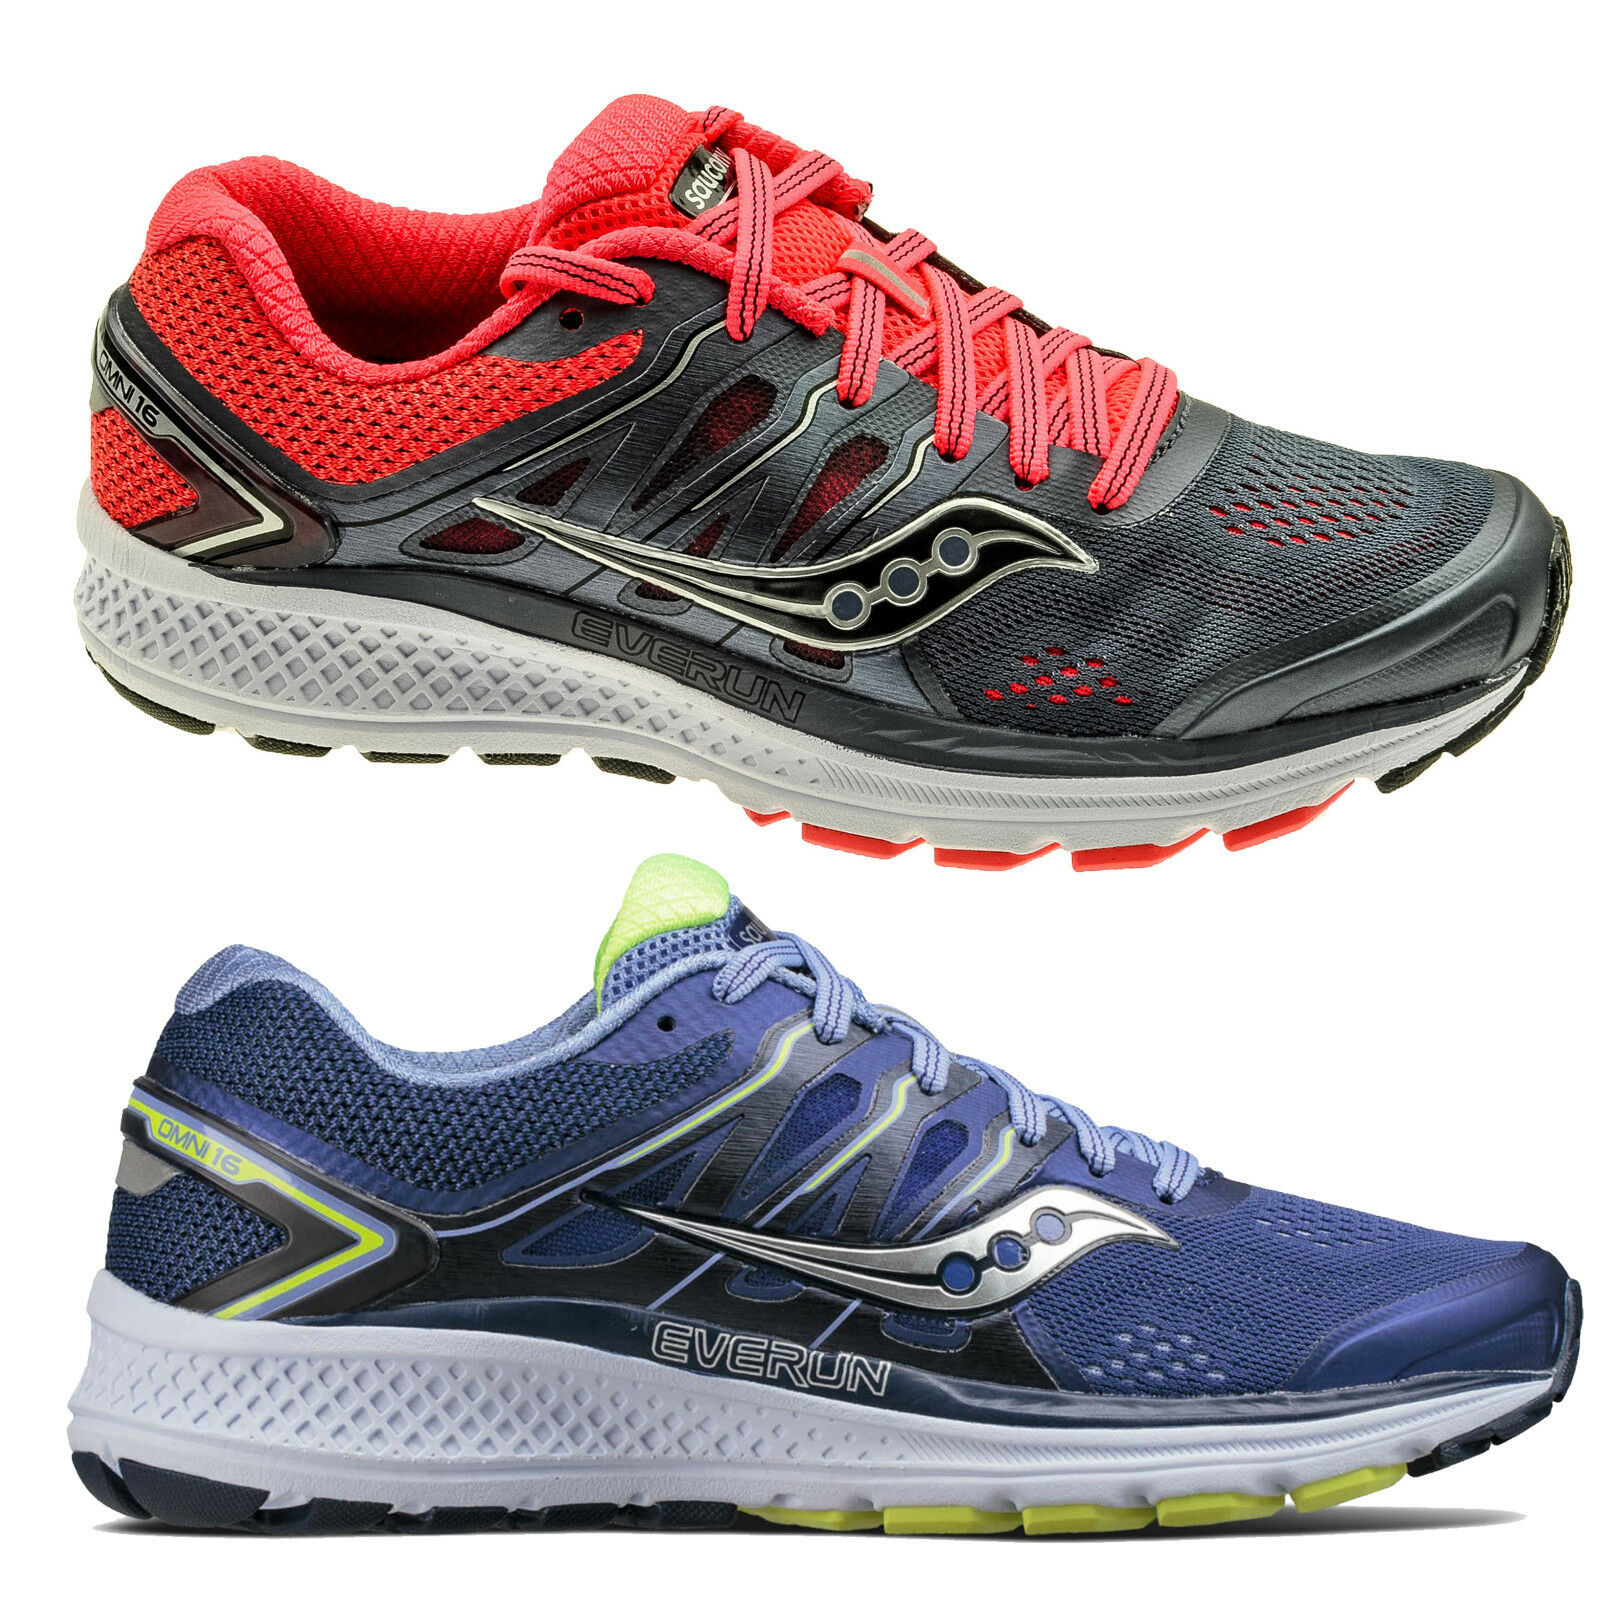 514f1478e Womens Saucony Omni 16 Road Running Shoes Trainers Sizes 4 to 9 - Medium